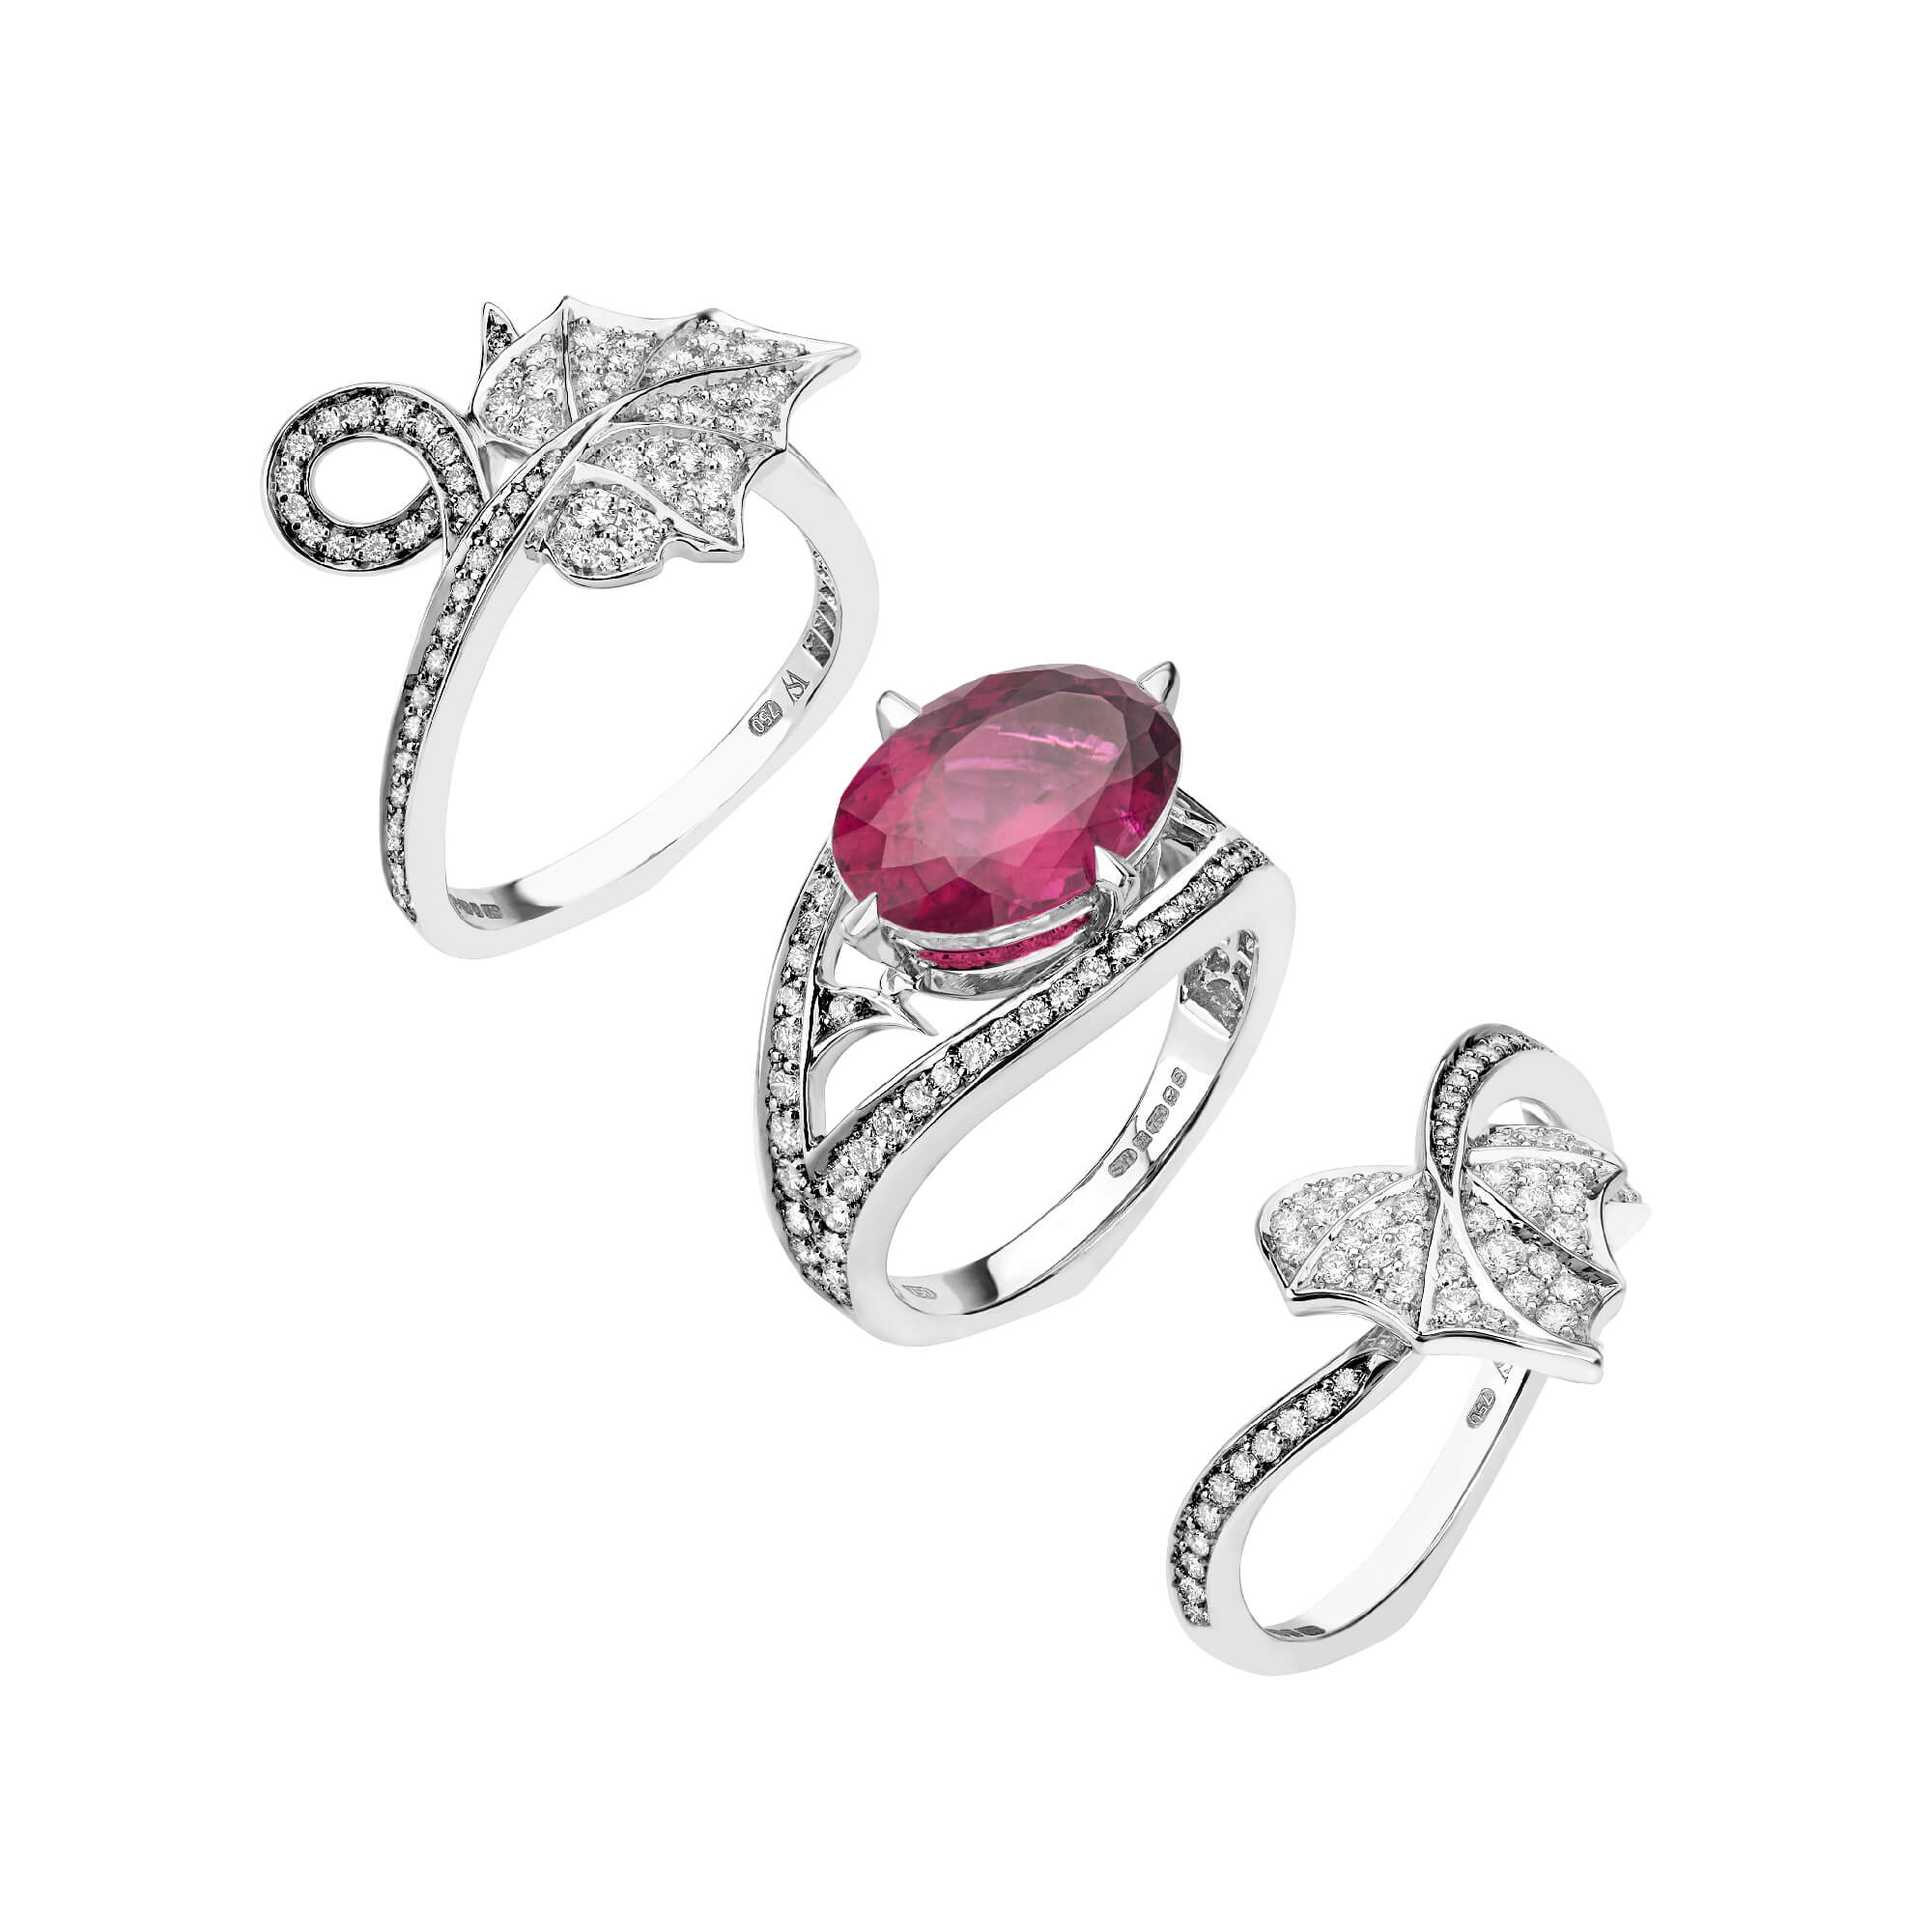 Poison Ivy Rubellite Cocktail Ring - Image 1 | No Regrets